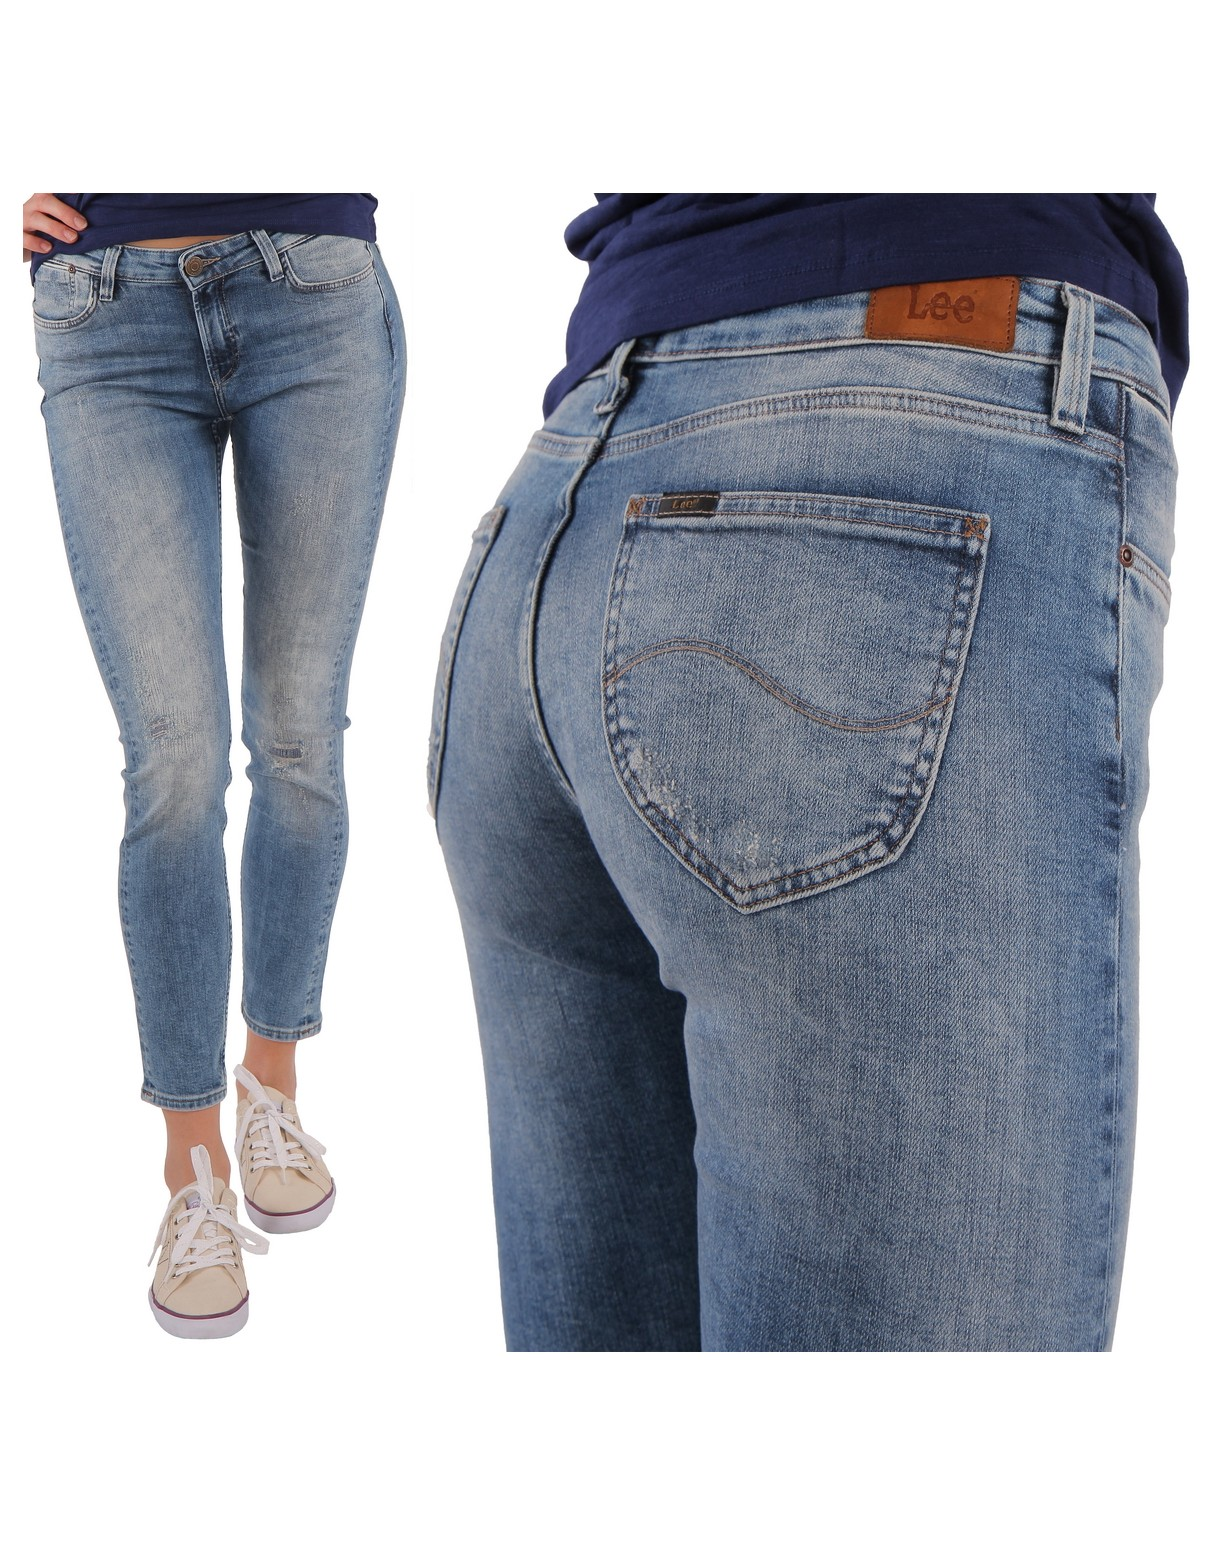 JEANSY LEE SCARLETT SELVAGE EASTSIDE REPAIR denimking